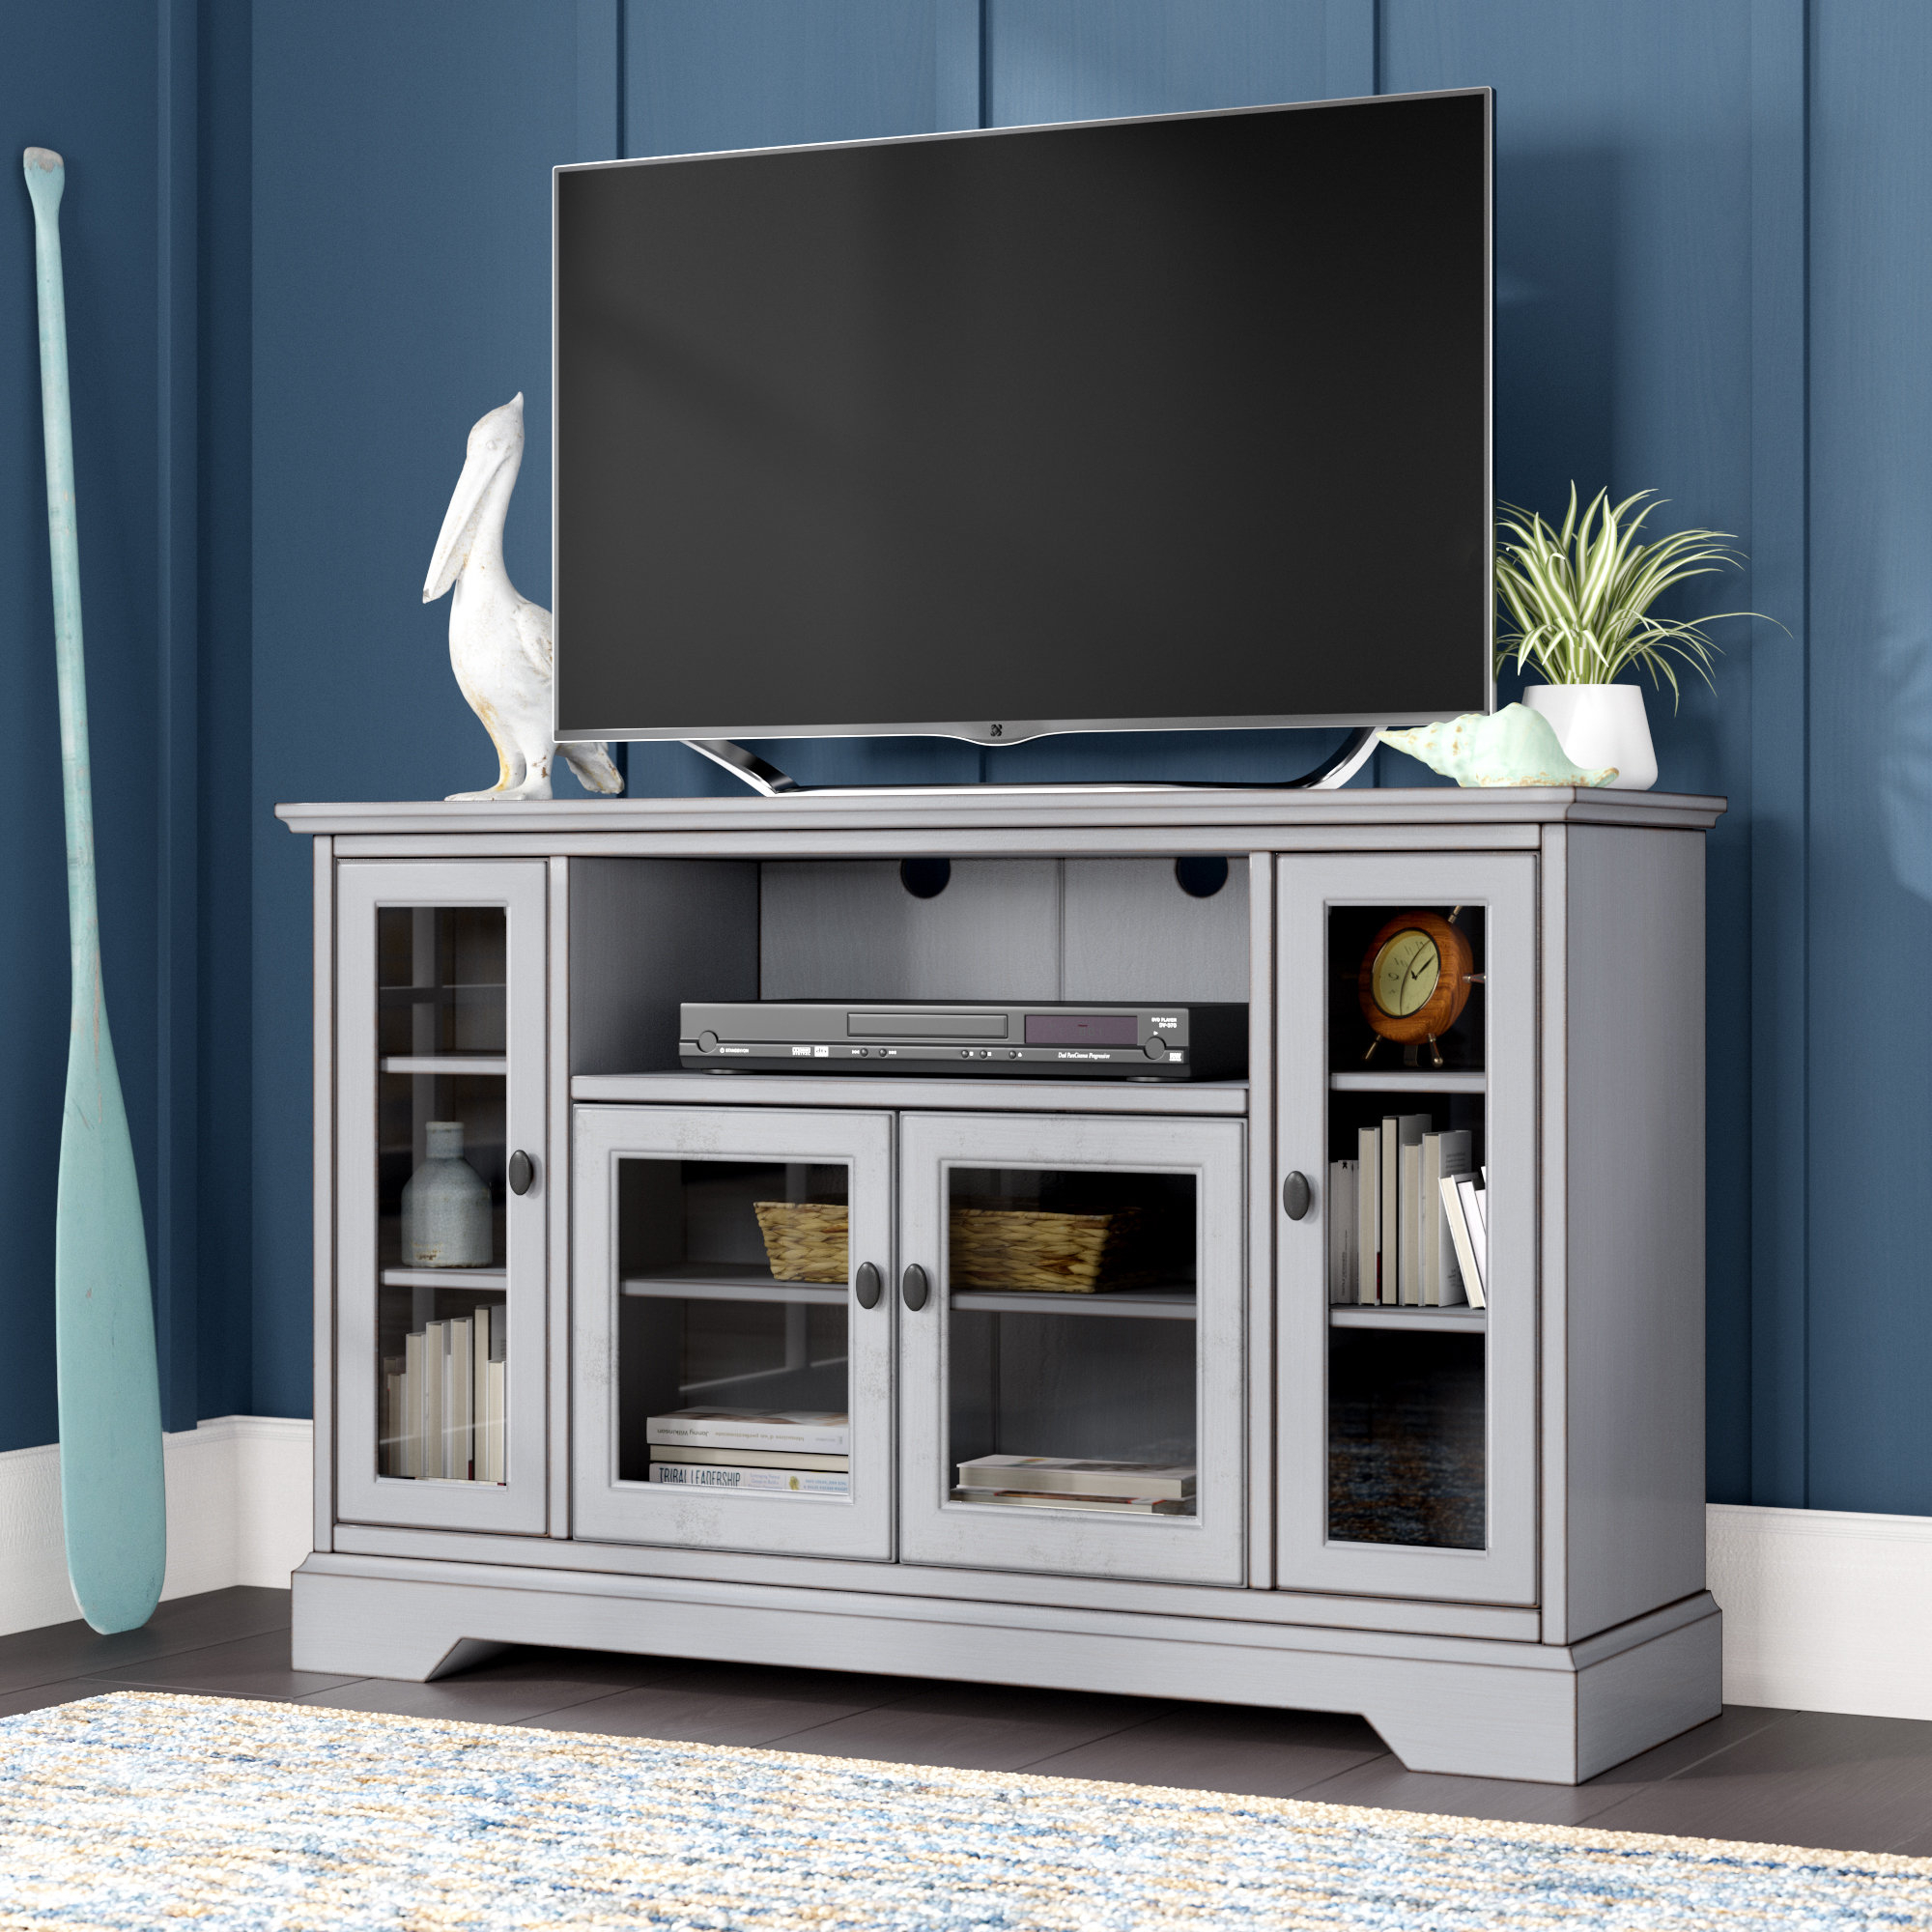 75 Inch Tv Stand | Wayfair Within Laurent 60 Inch Tv Stands (View 14 of 30)